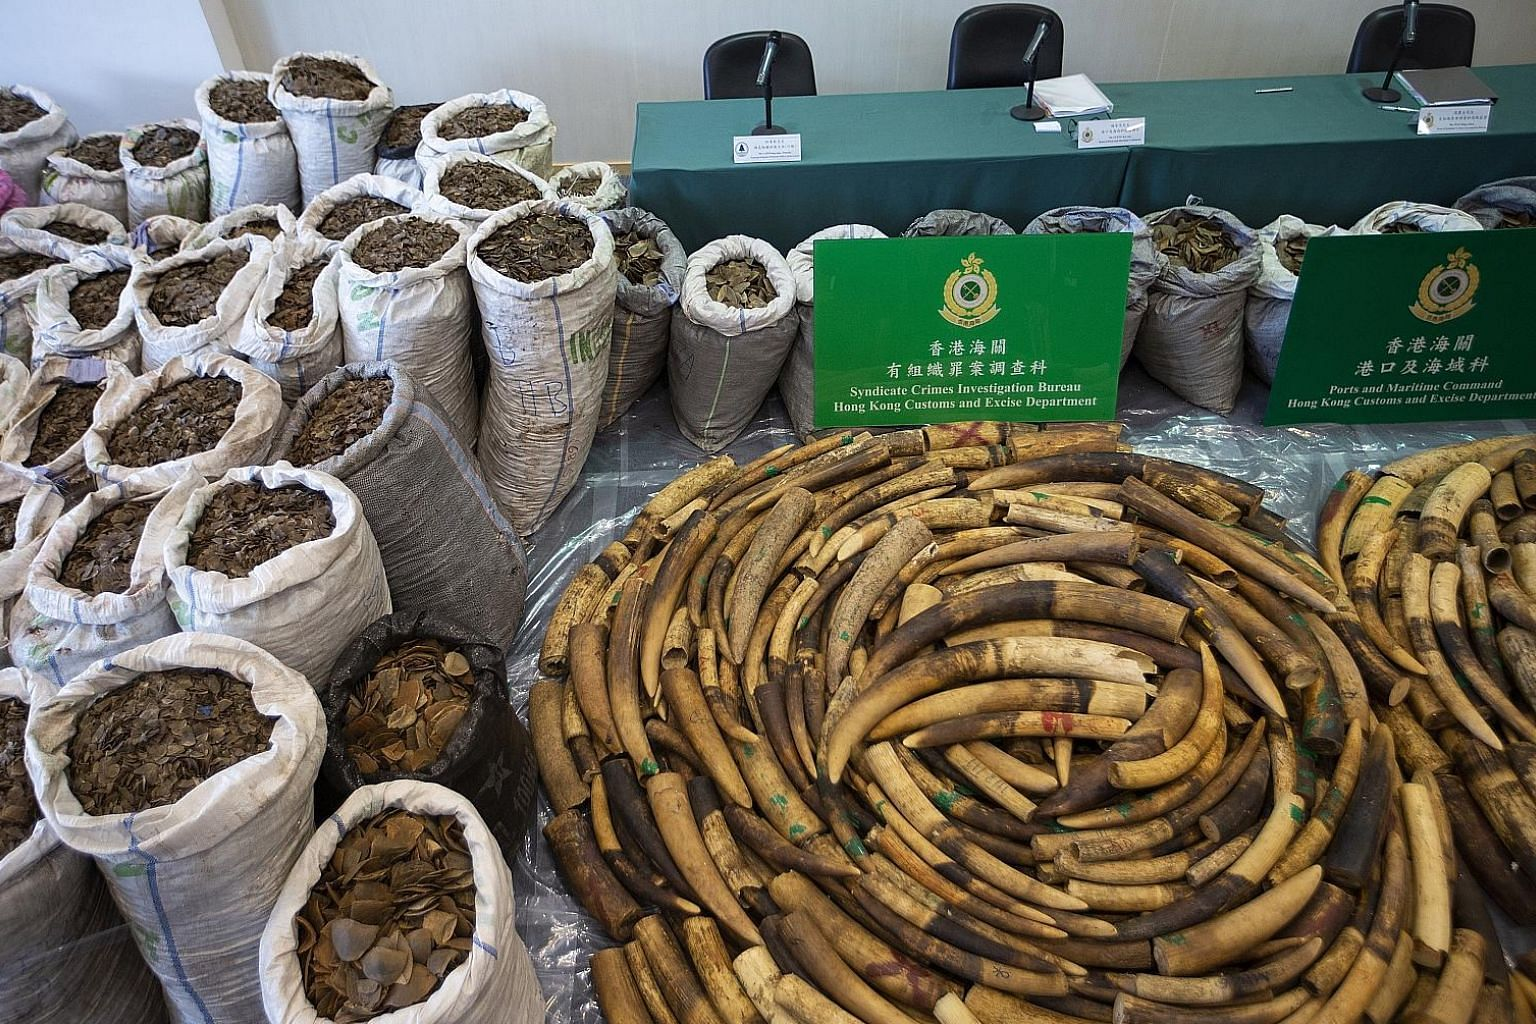 Elephant tusks weighing more than 2 tonnes and over 8 tonnes of pangolin scales on display at a Hong Kong Customs and Excise Department press briefing in Kowloon on Feb 1. Between 2013 and 2017, Hong Kong seized 43 tonnes of pangolin scales and carca